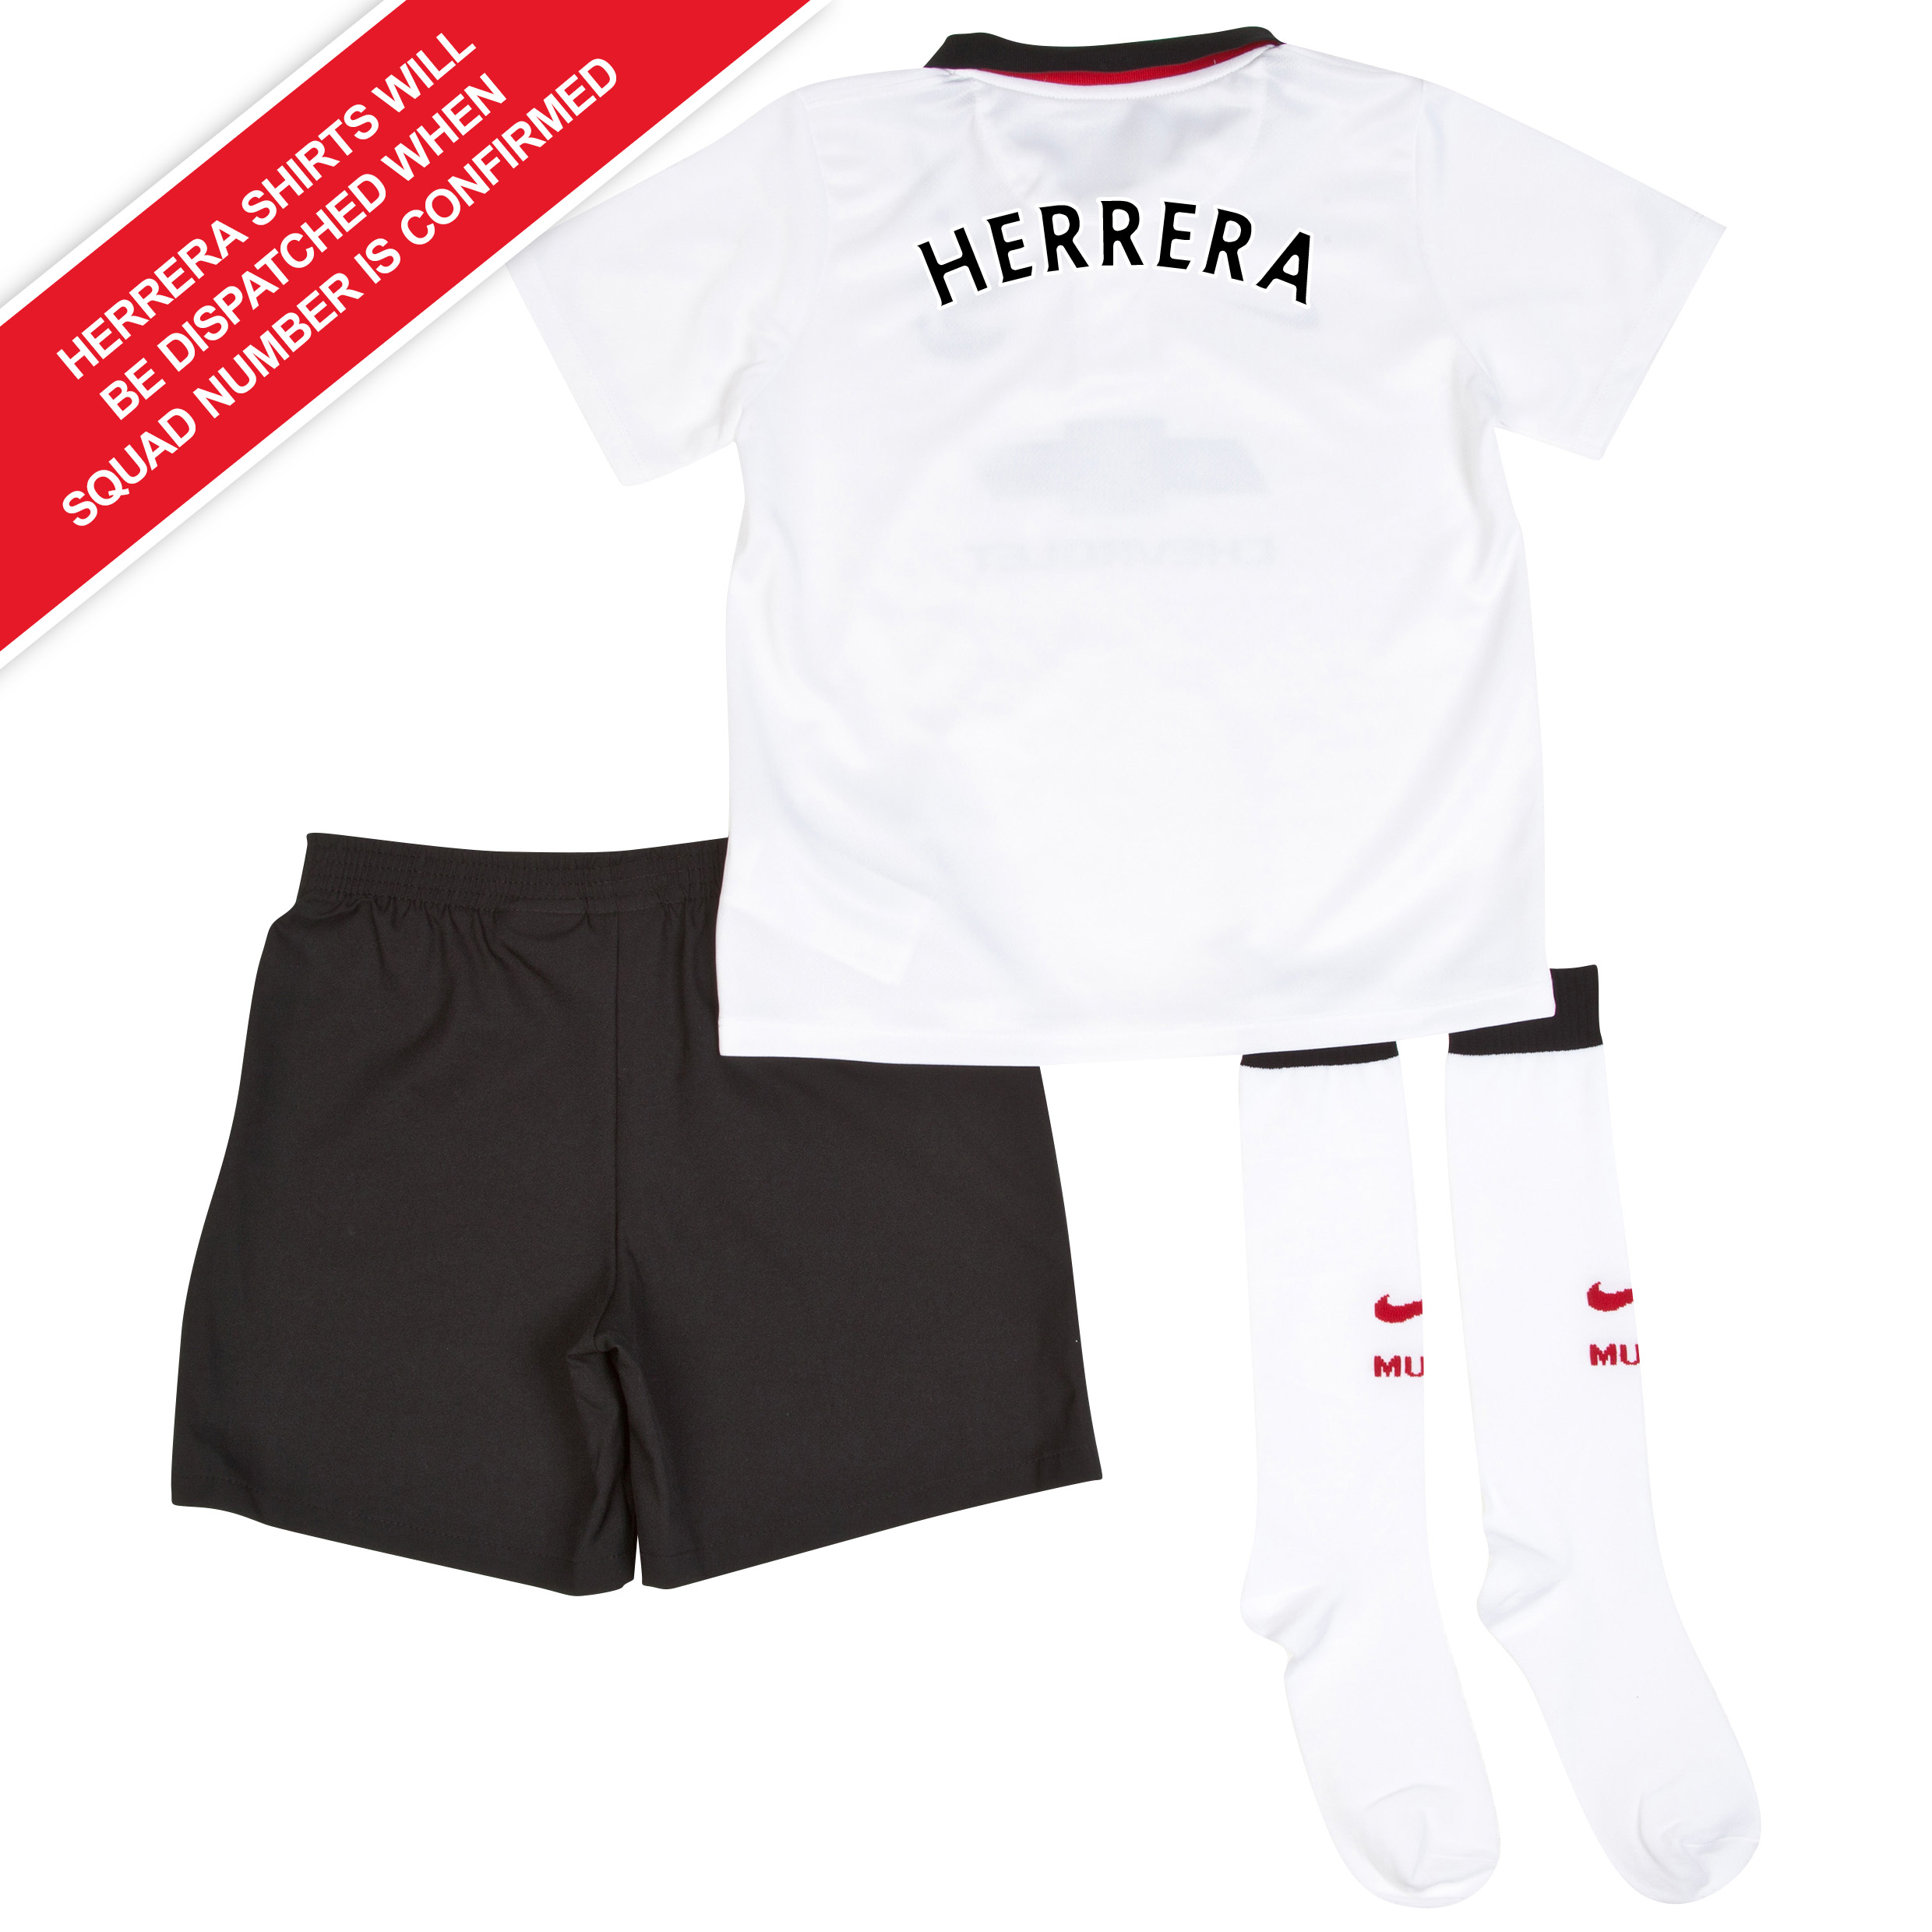 Manchester United Away Kit 2014/15 - Little Boys with Herrera TBC printing